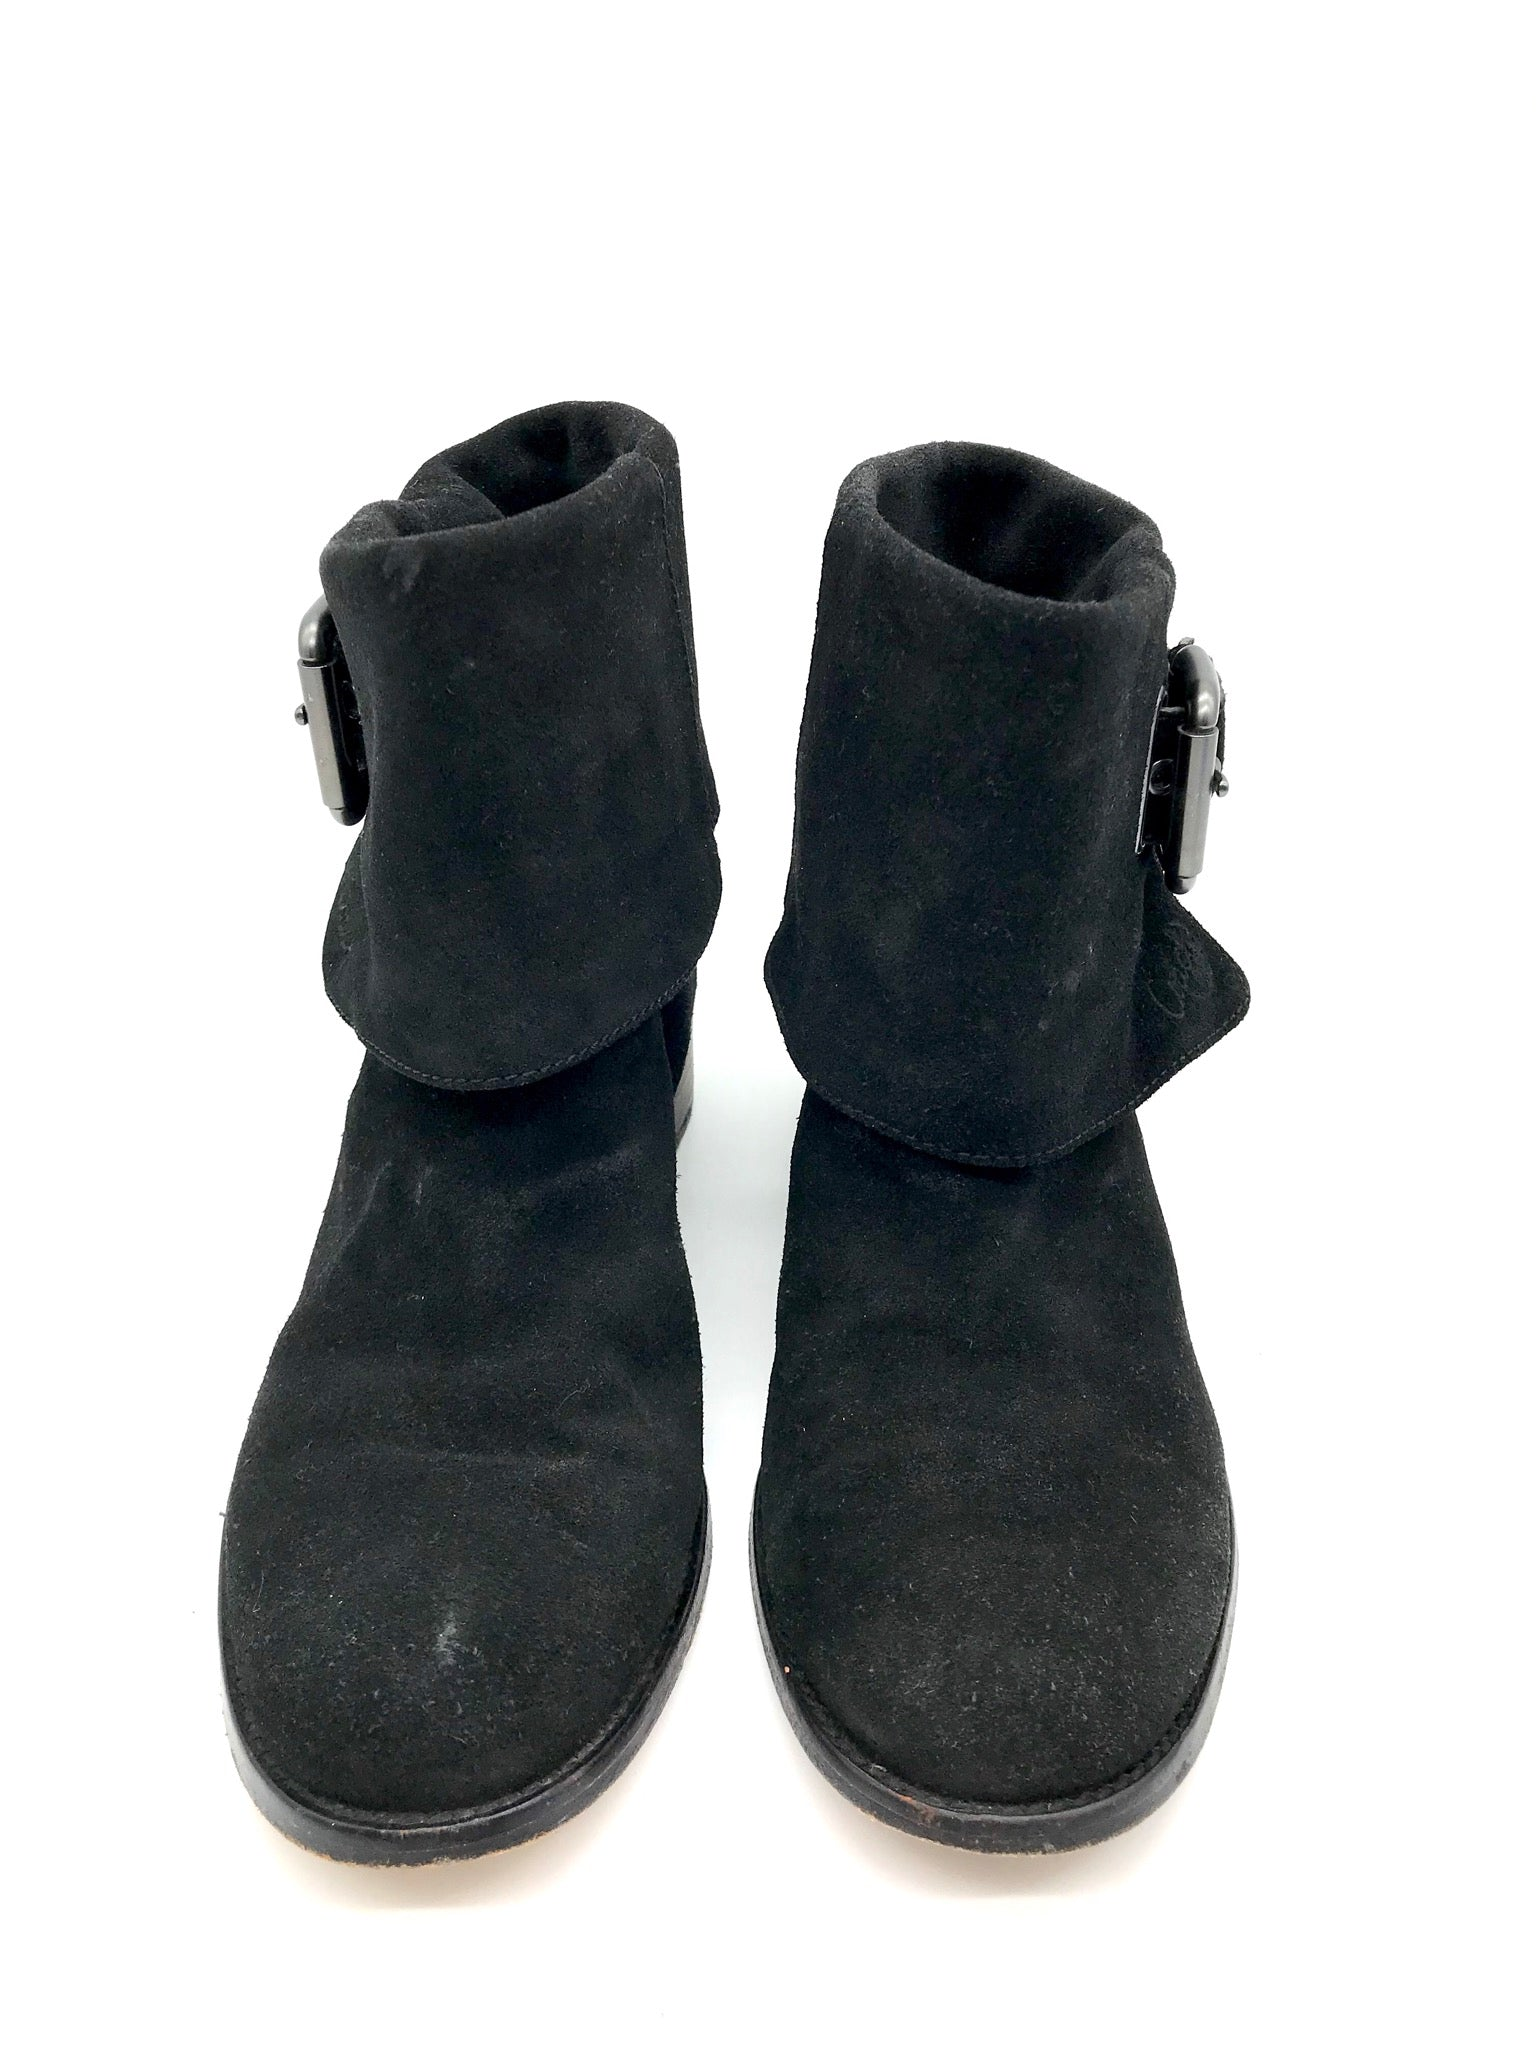 Primary Photo - BRAND: COACH <BR>STYLE: BOOTS ANKLE <BR>COLOR: BLACK <BR>SIZE: 7.5 <BR>SKU: 262-26275-54673<BR>SOME WEAR AROUND THE TOES - AS IS<BR>DESIGNER BRAND - FINAL SALE